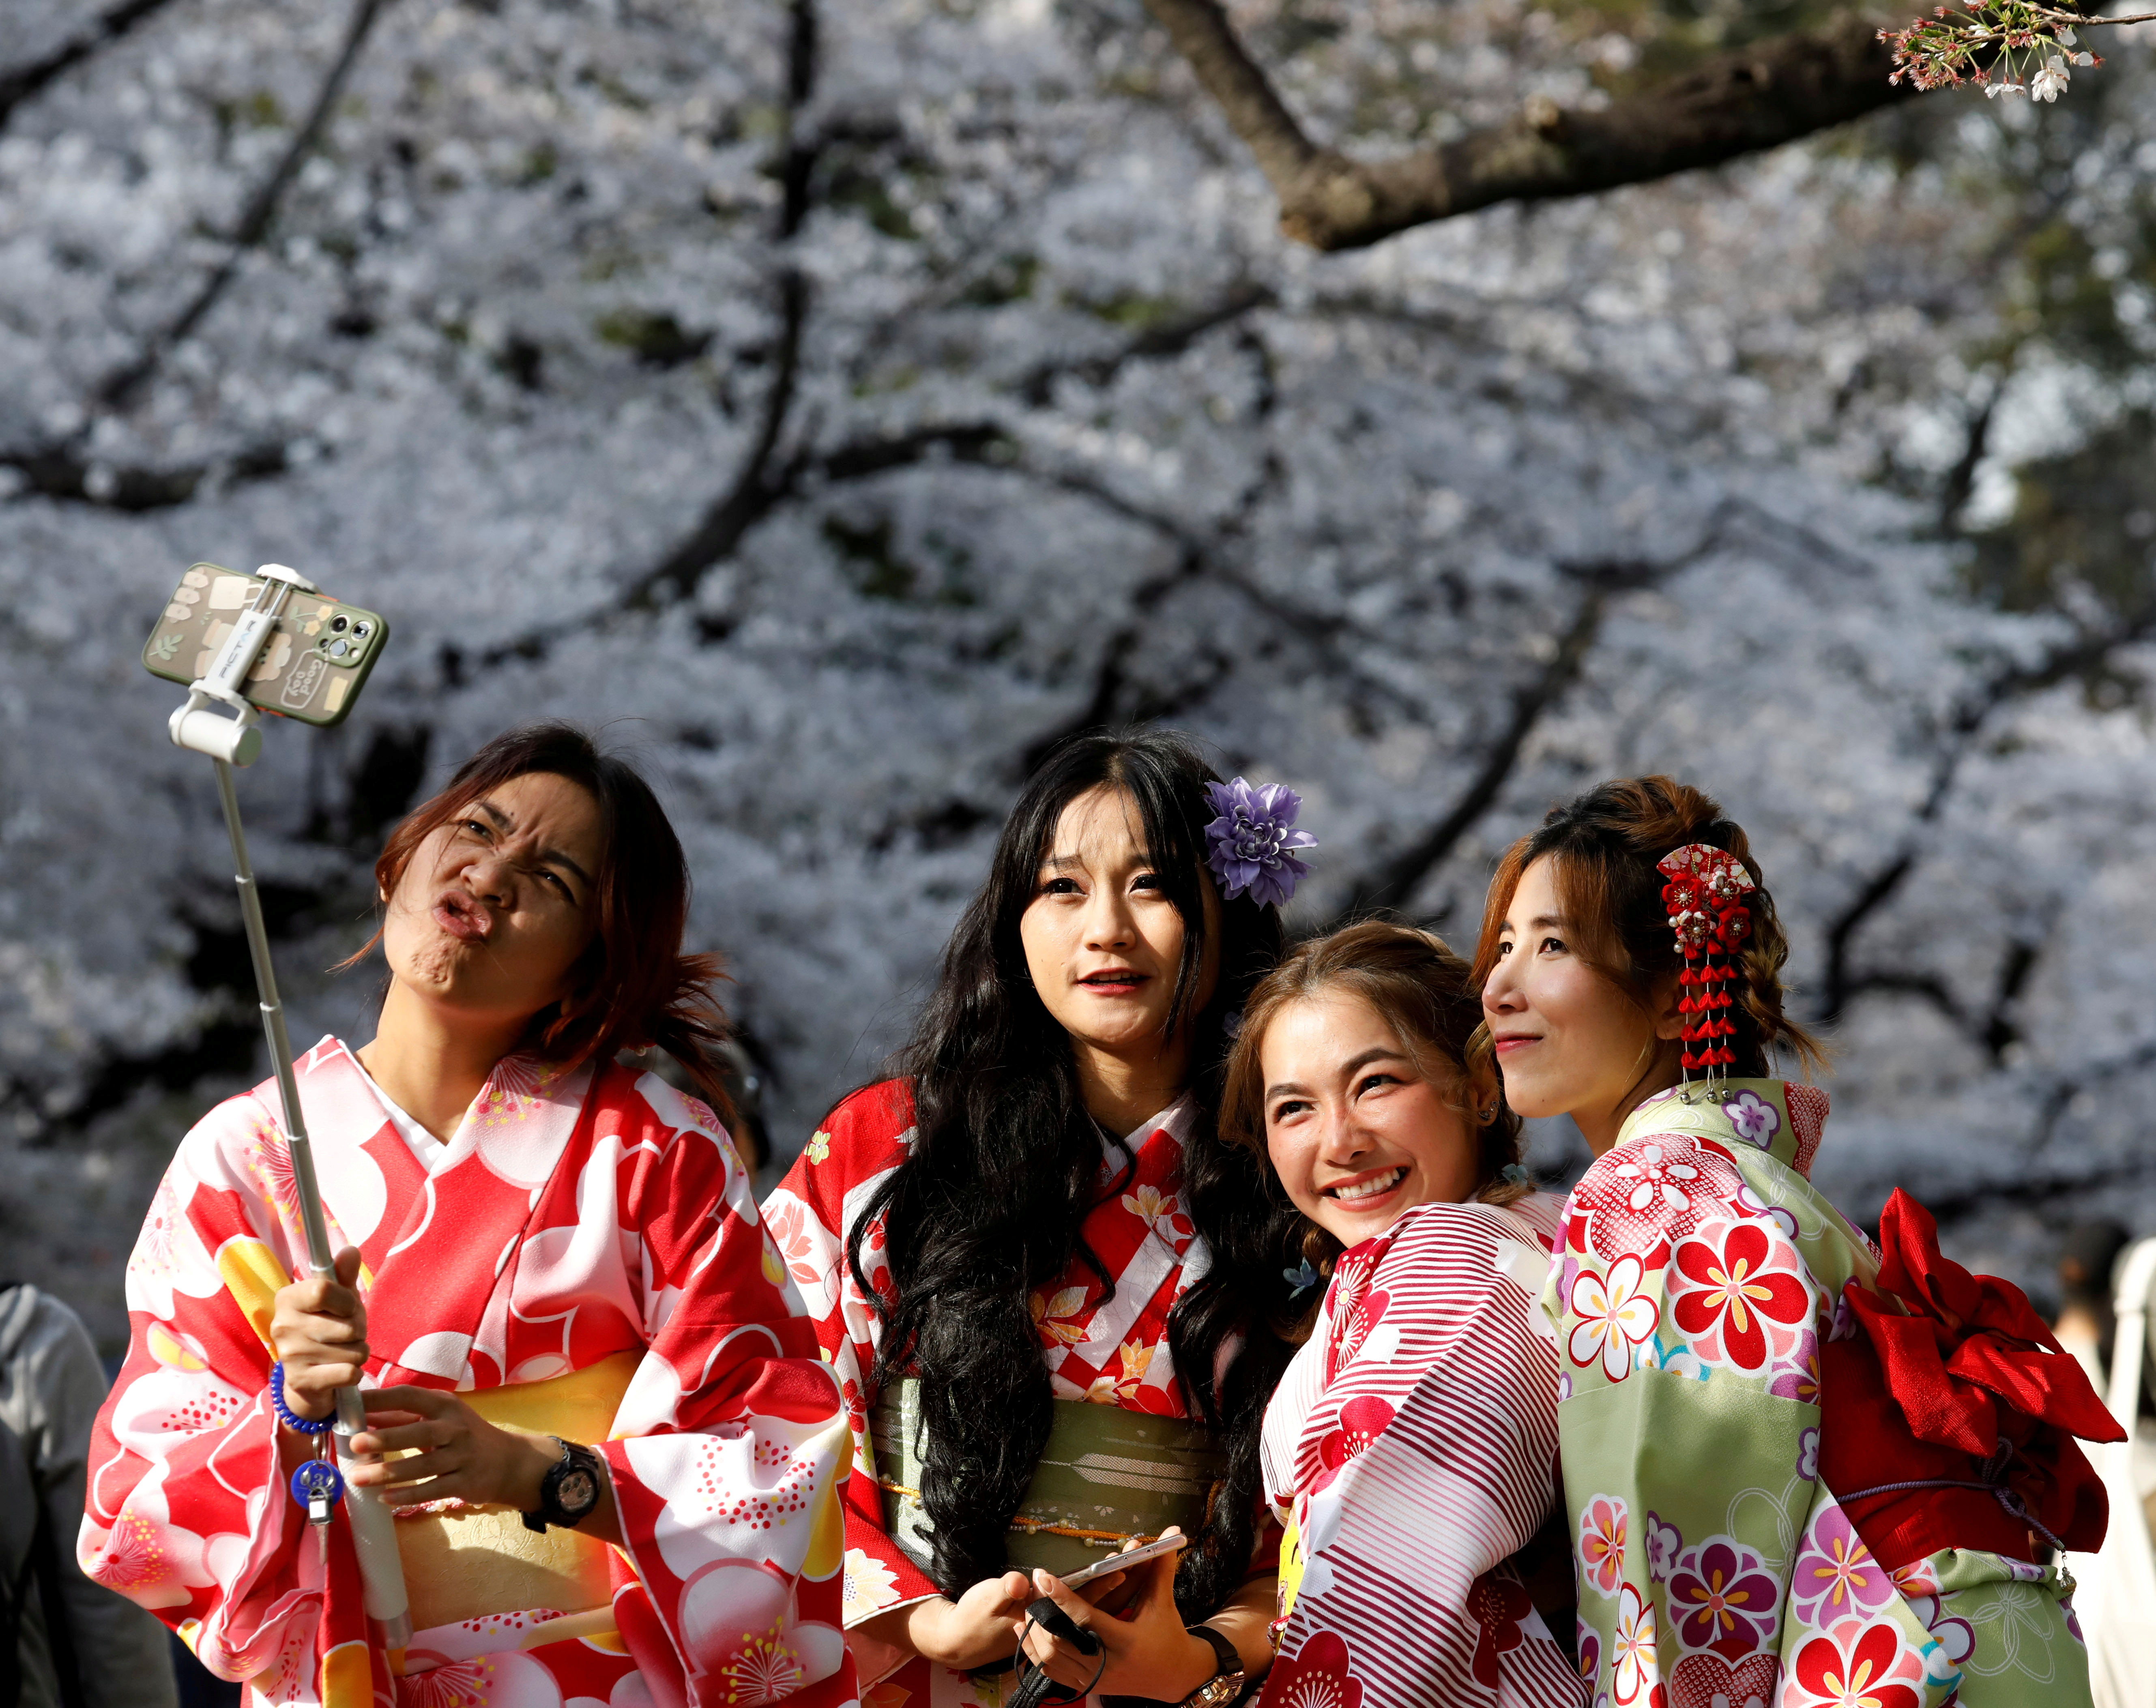 Kimono-clad women from Thailand take selfies among blooming cherry blossoms at Ueno Park in Tokyo, Japan, March 27, 2021. REUTERS/Kim Kyung-Hoon/File Photo